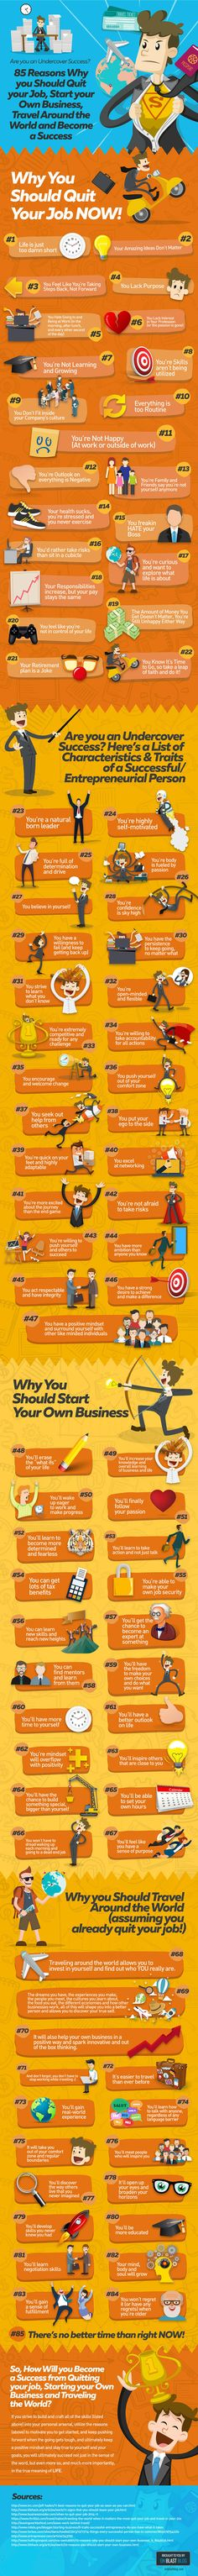 Should you quit your job infographic